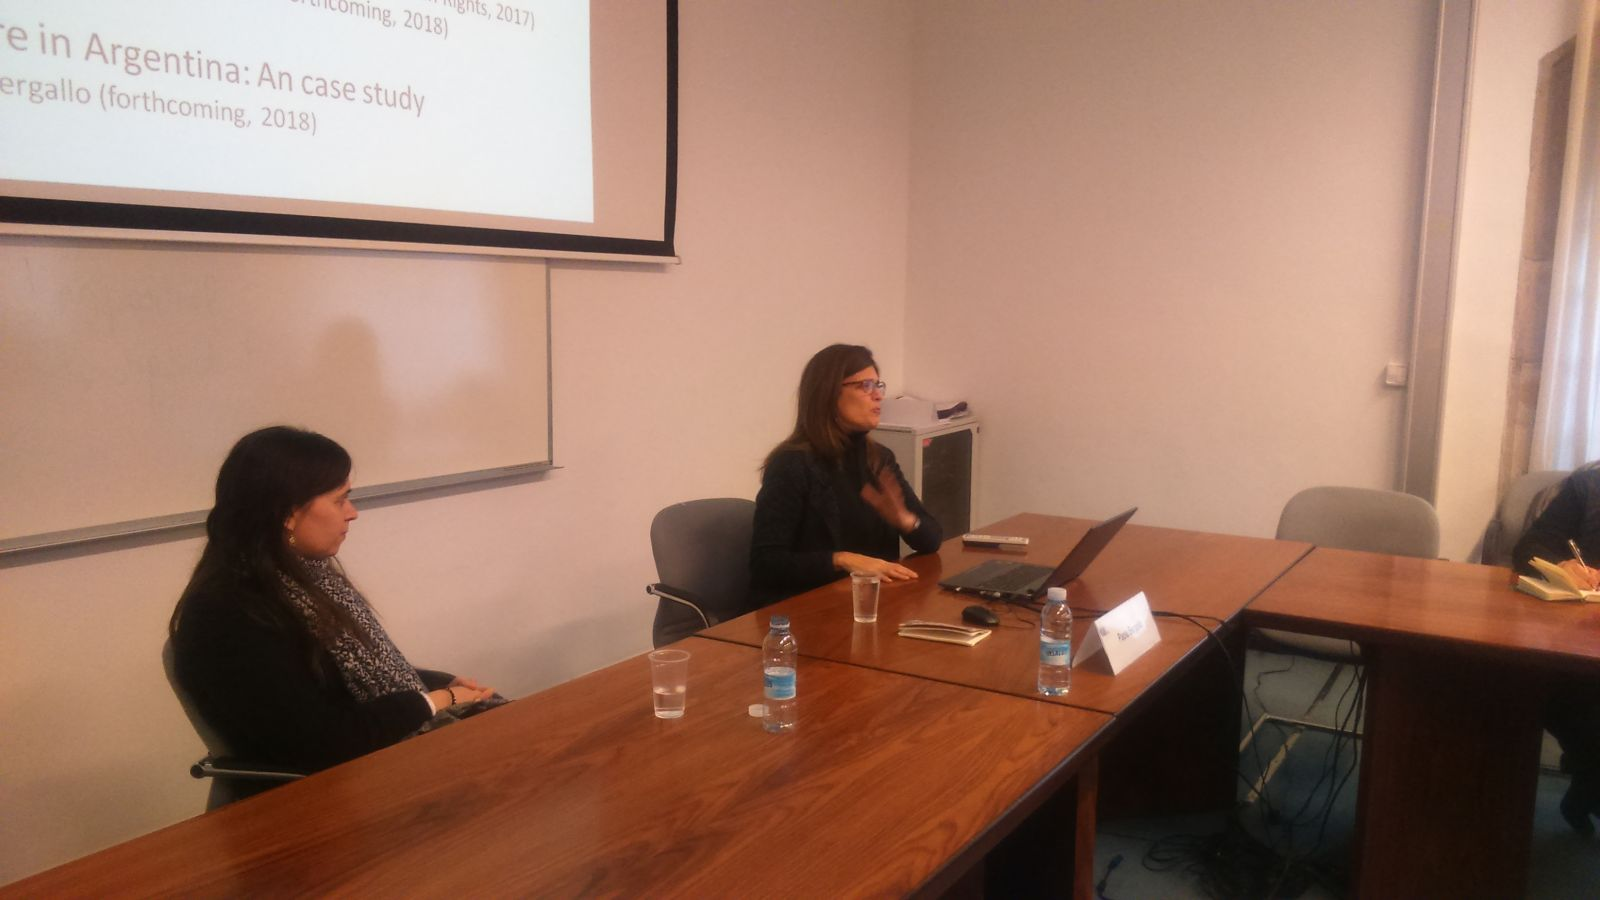 Paola Bergallo, during her presentation.